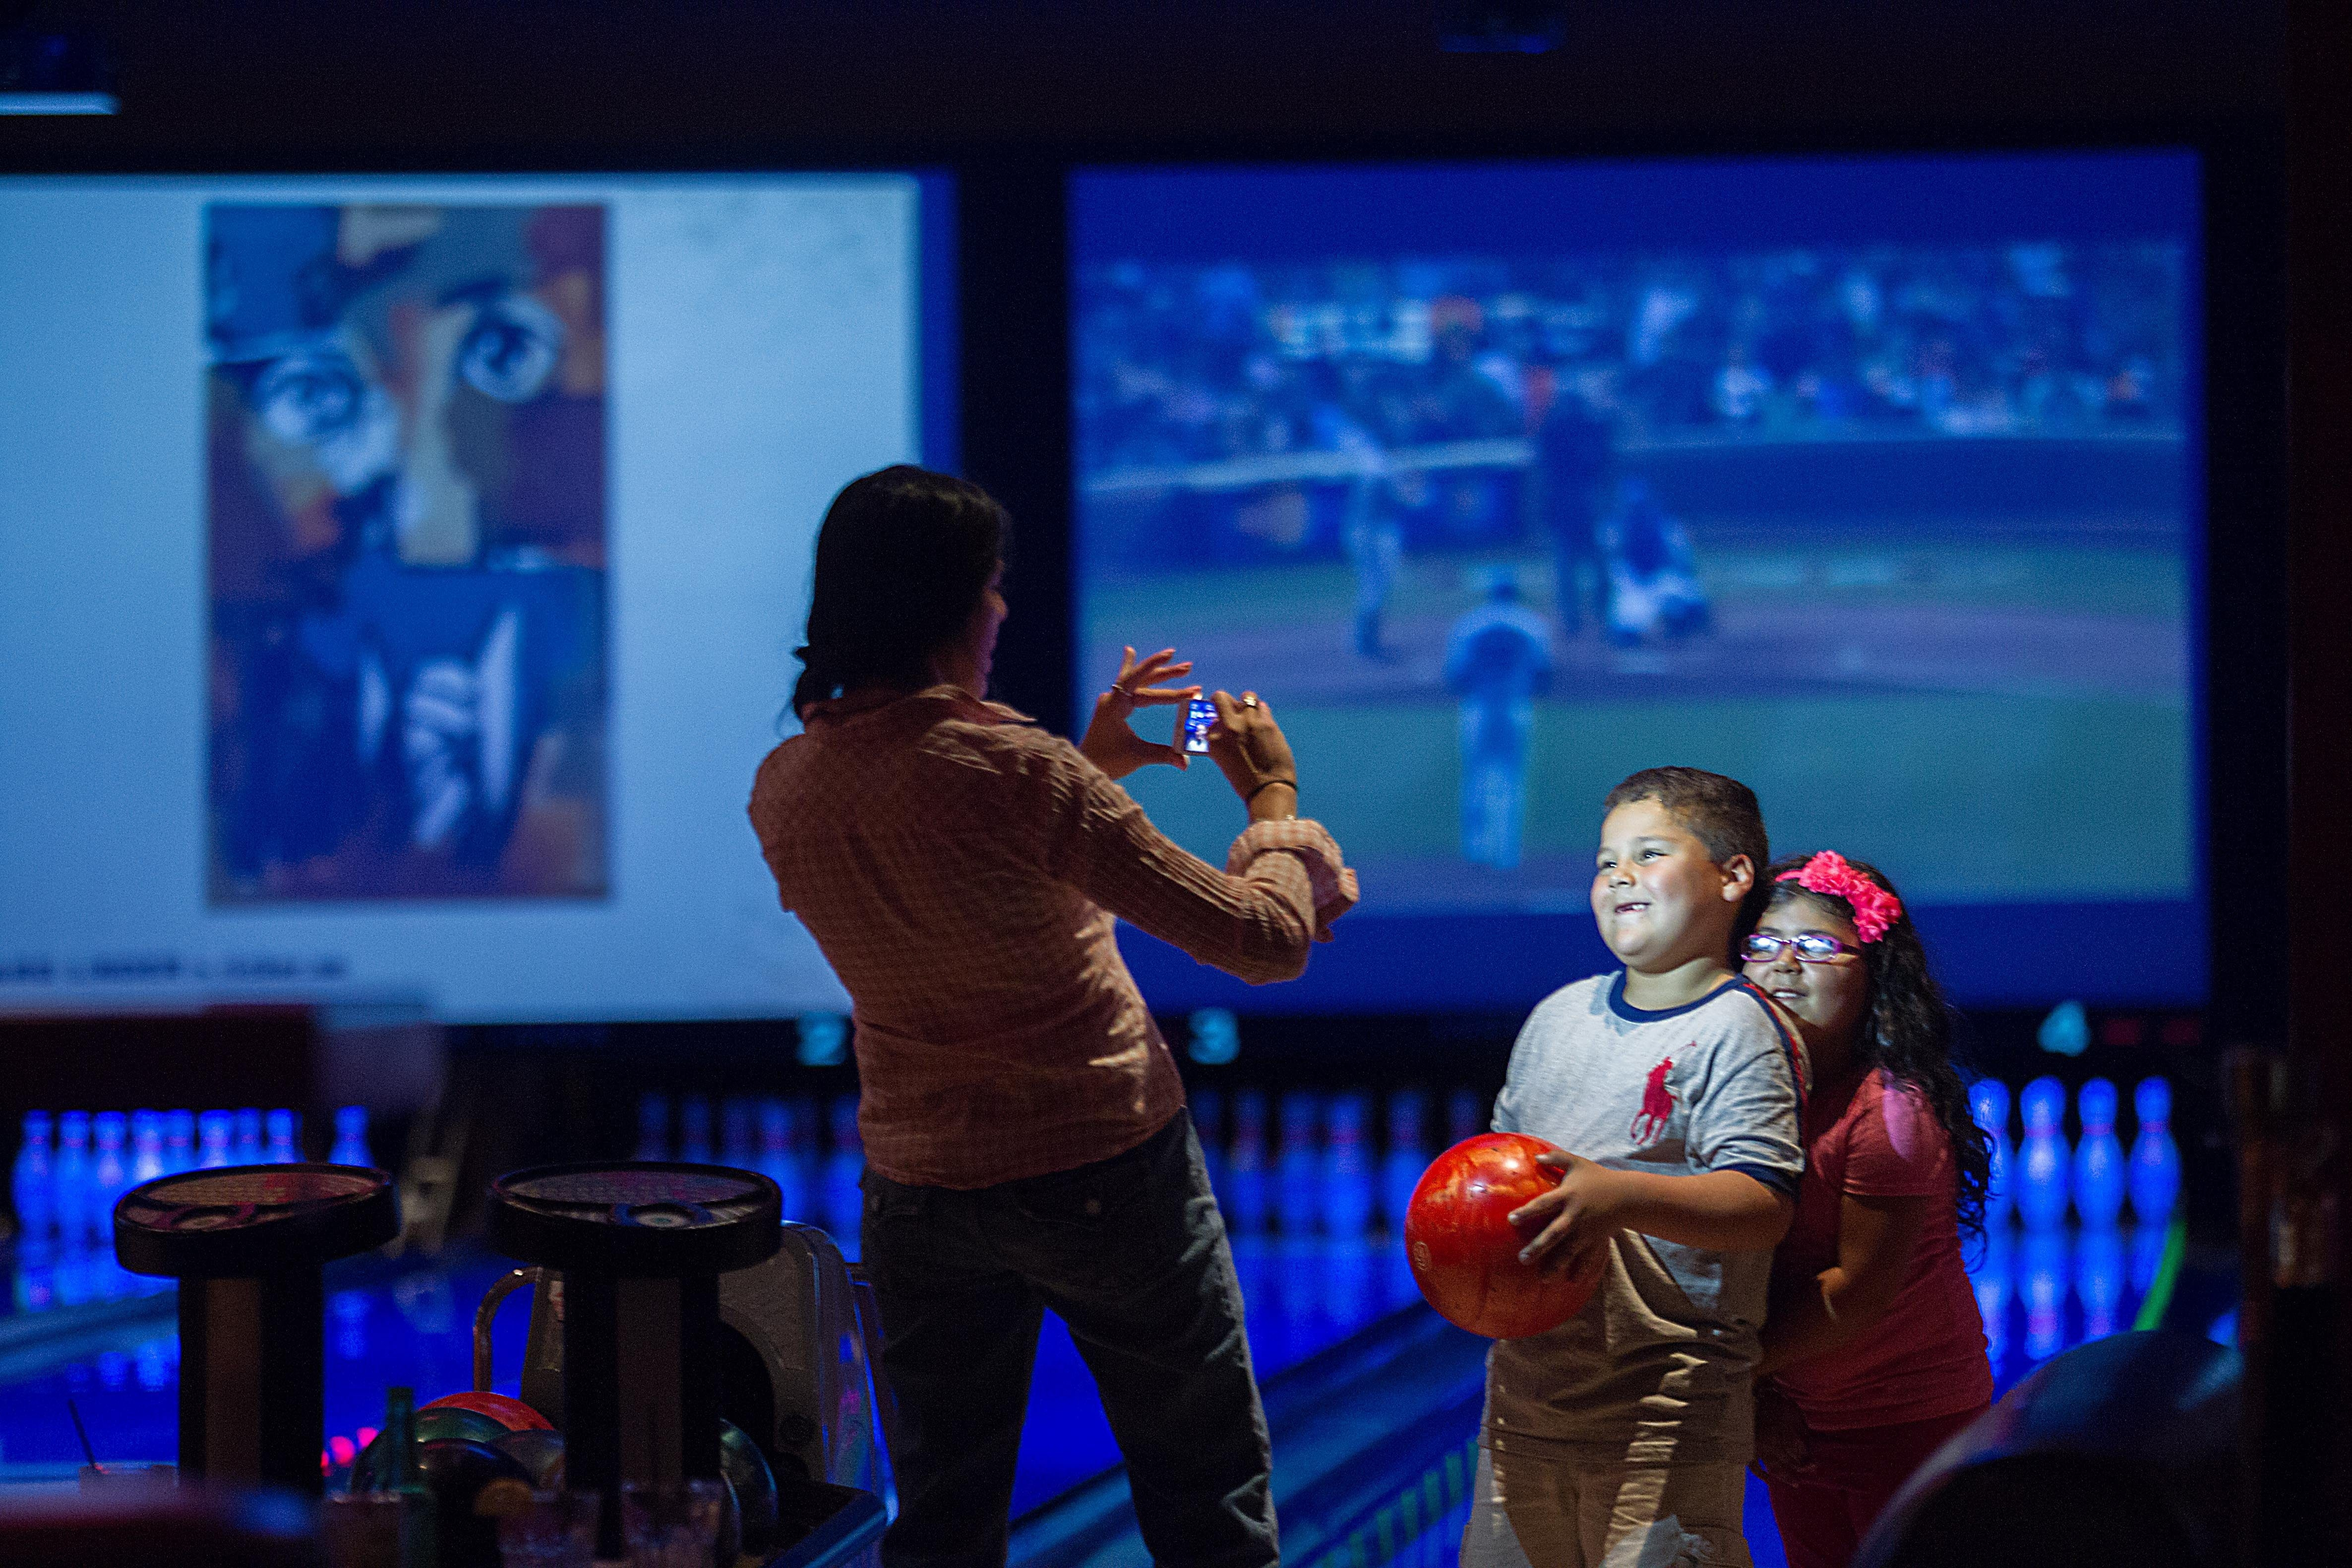 Jacqueline Martinez takes a picture of her son Ryan, 6, and daughter Isabel, 4, as they bowl at Lucky Strike, one of a handful of old-fashioned bowling alleys that still exist in Chicago.